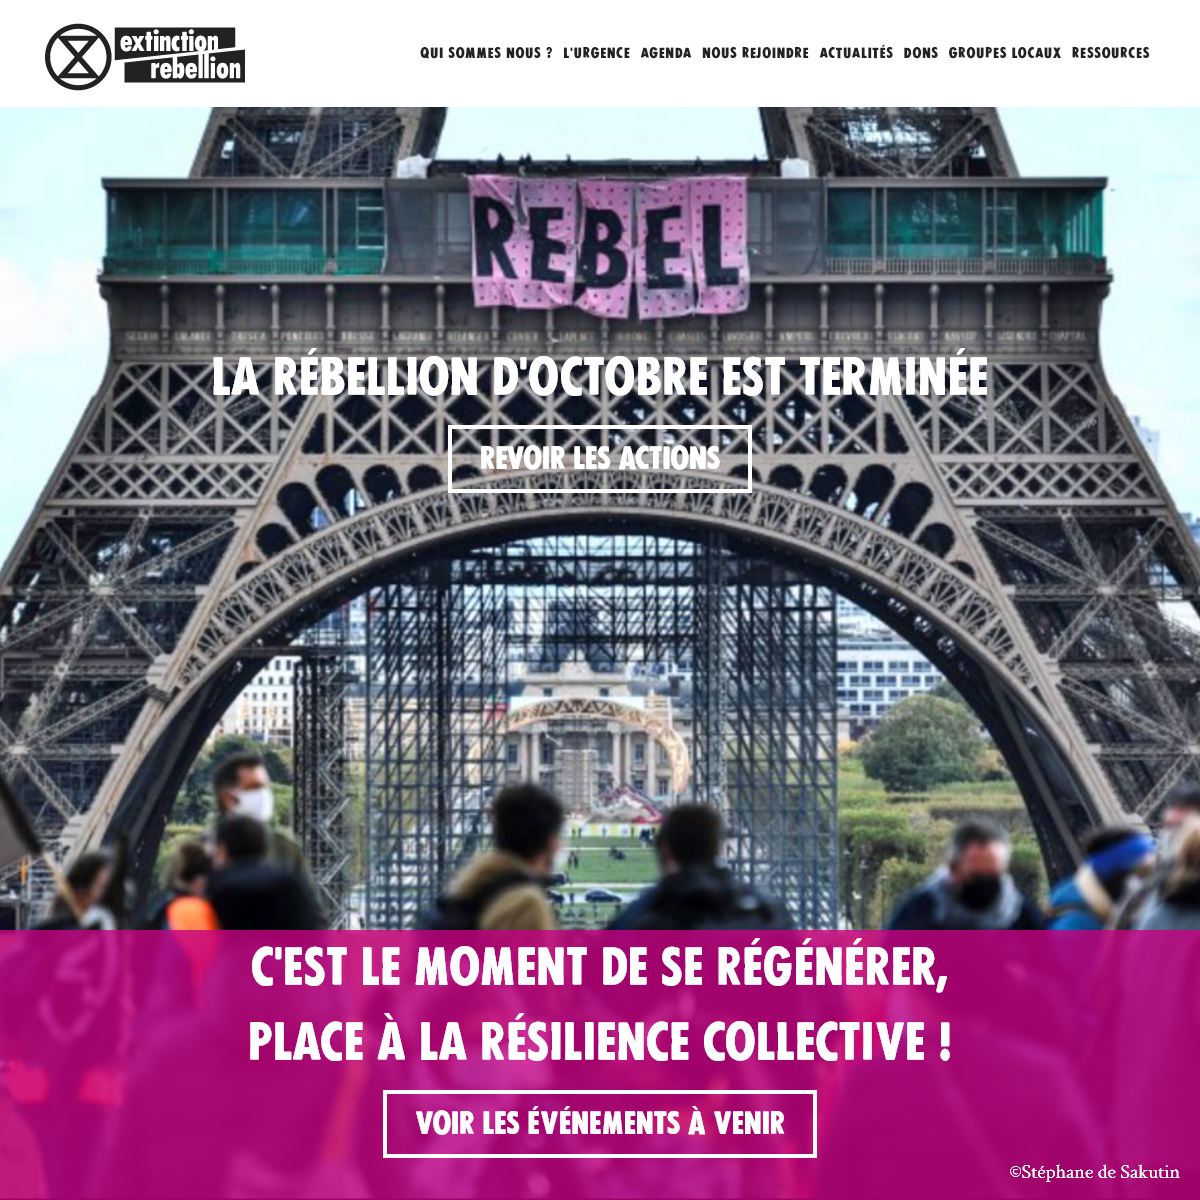 Extinction Rebellion France